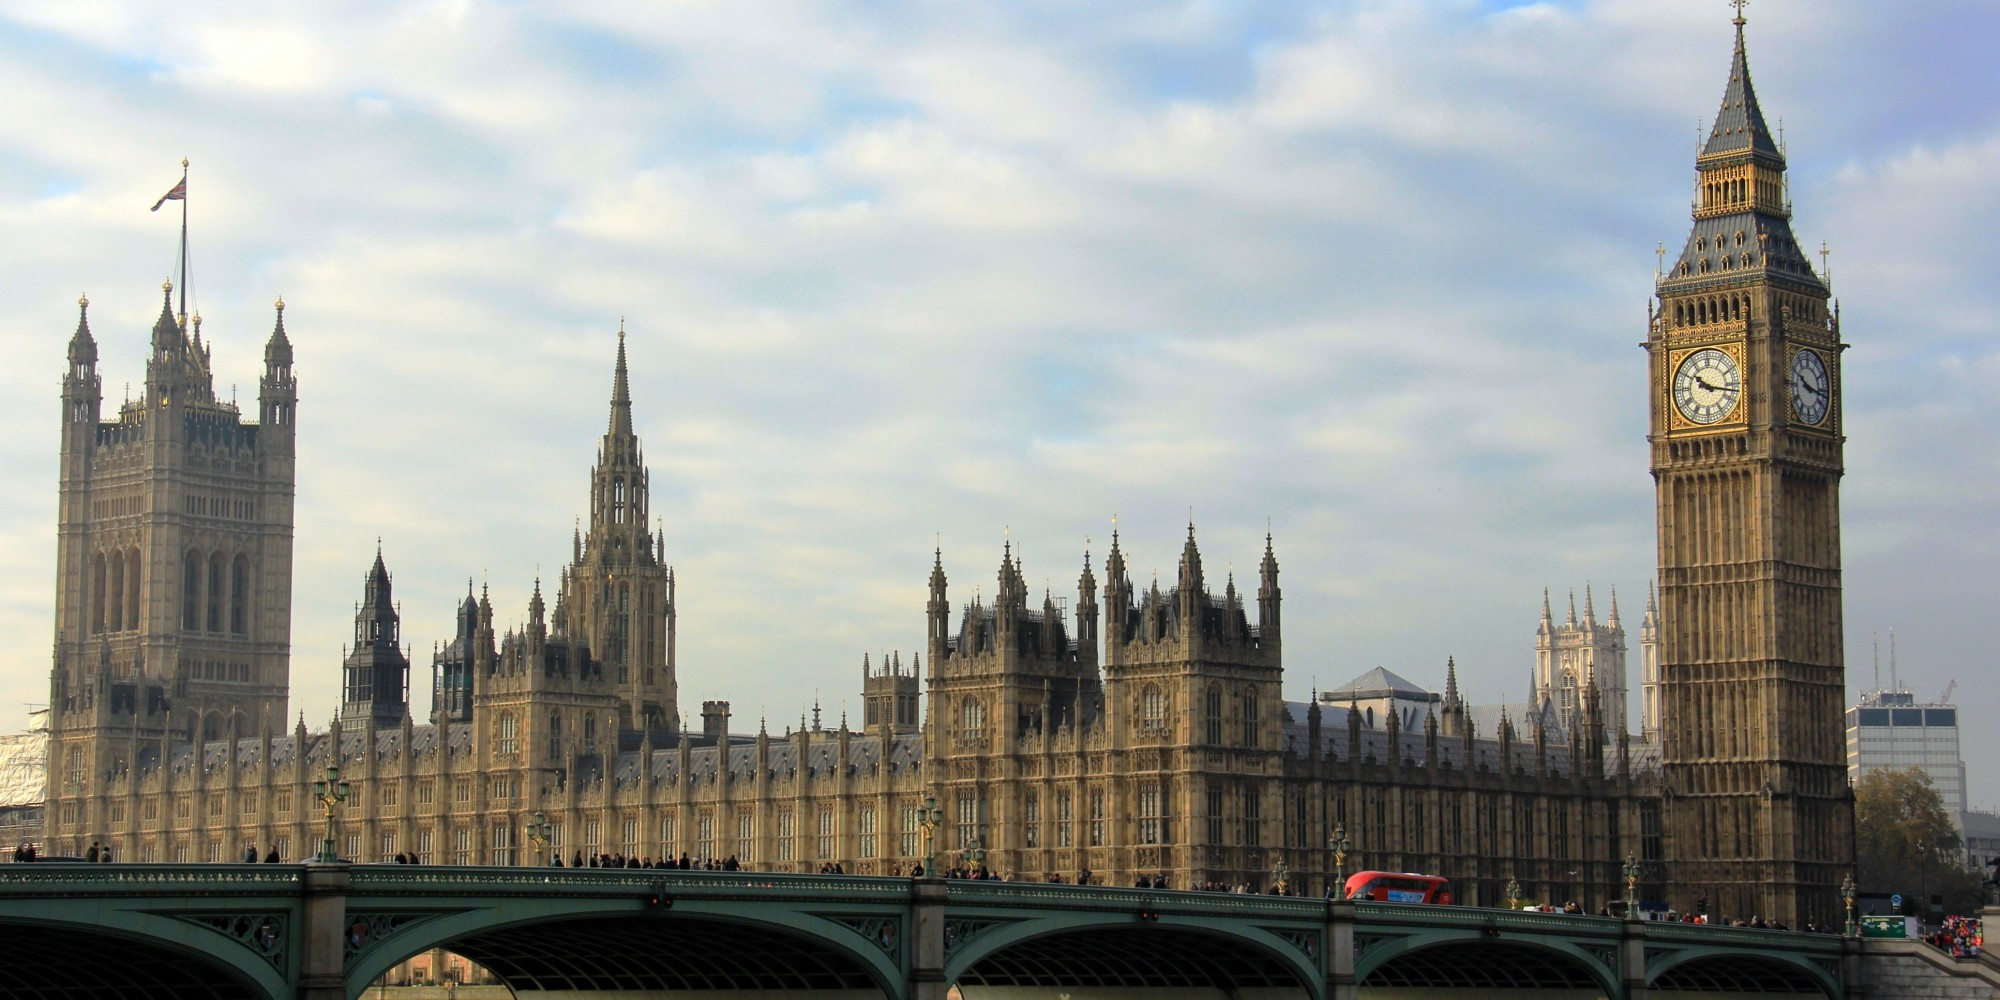 Houses Of Parliament To Stay In London For Refurbishment